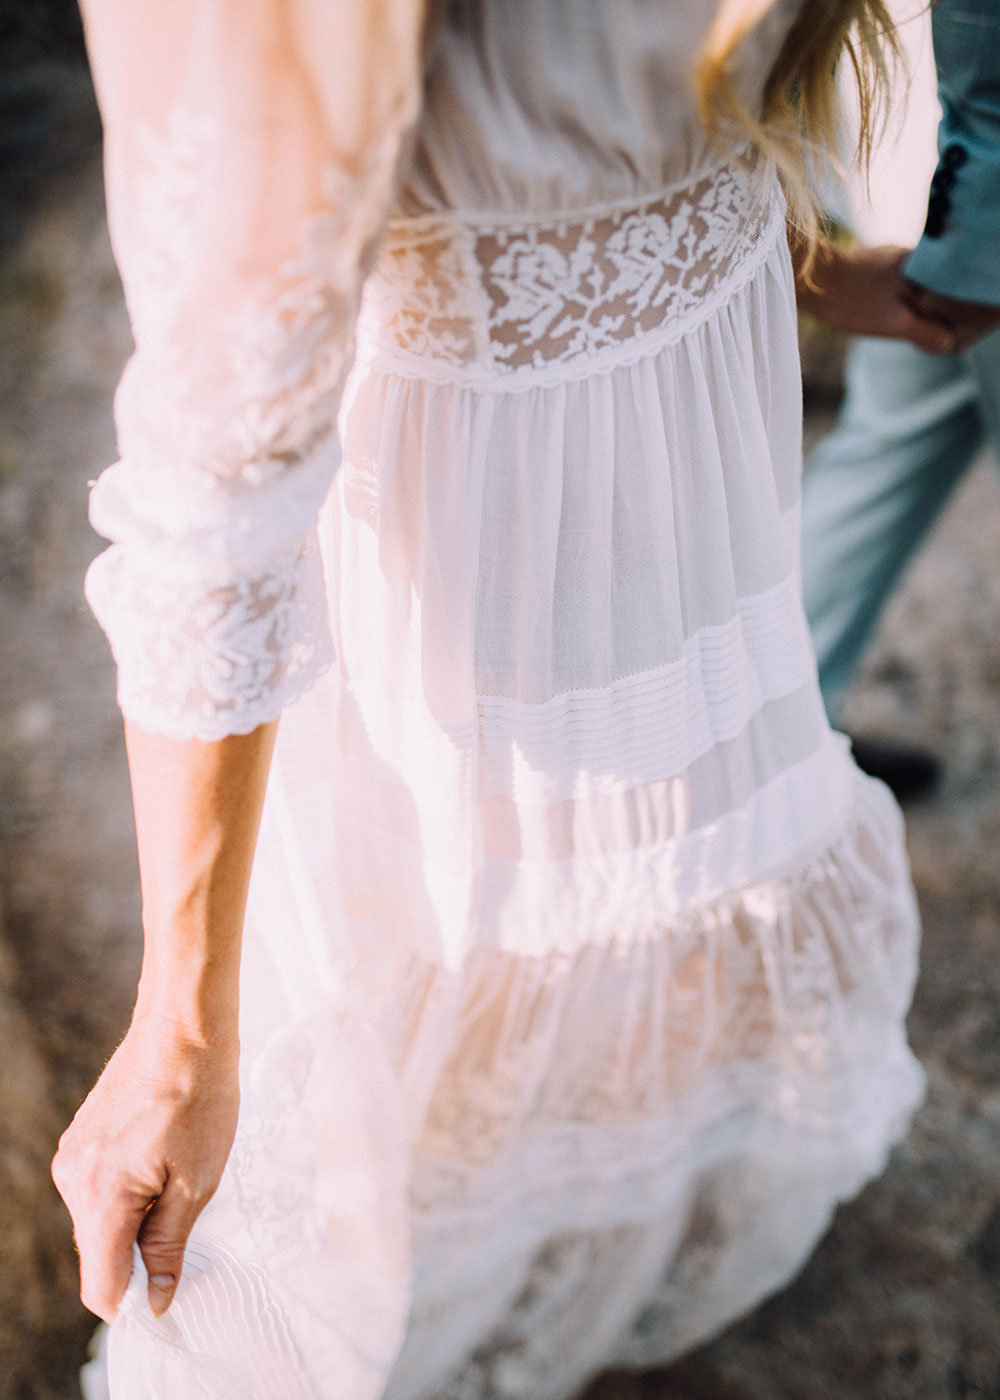 details of this the gorgeous boho wedding dress by spell from our 10 year anniversary photo session | thelovedesignedlife.com